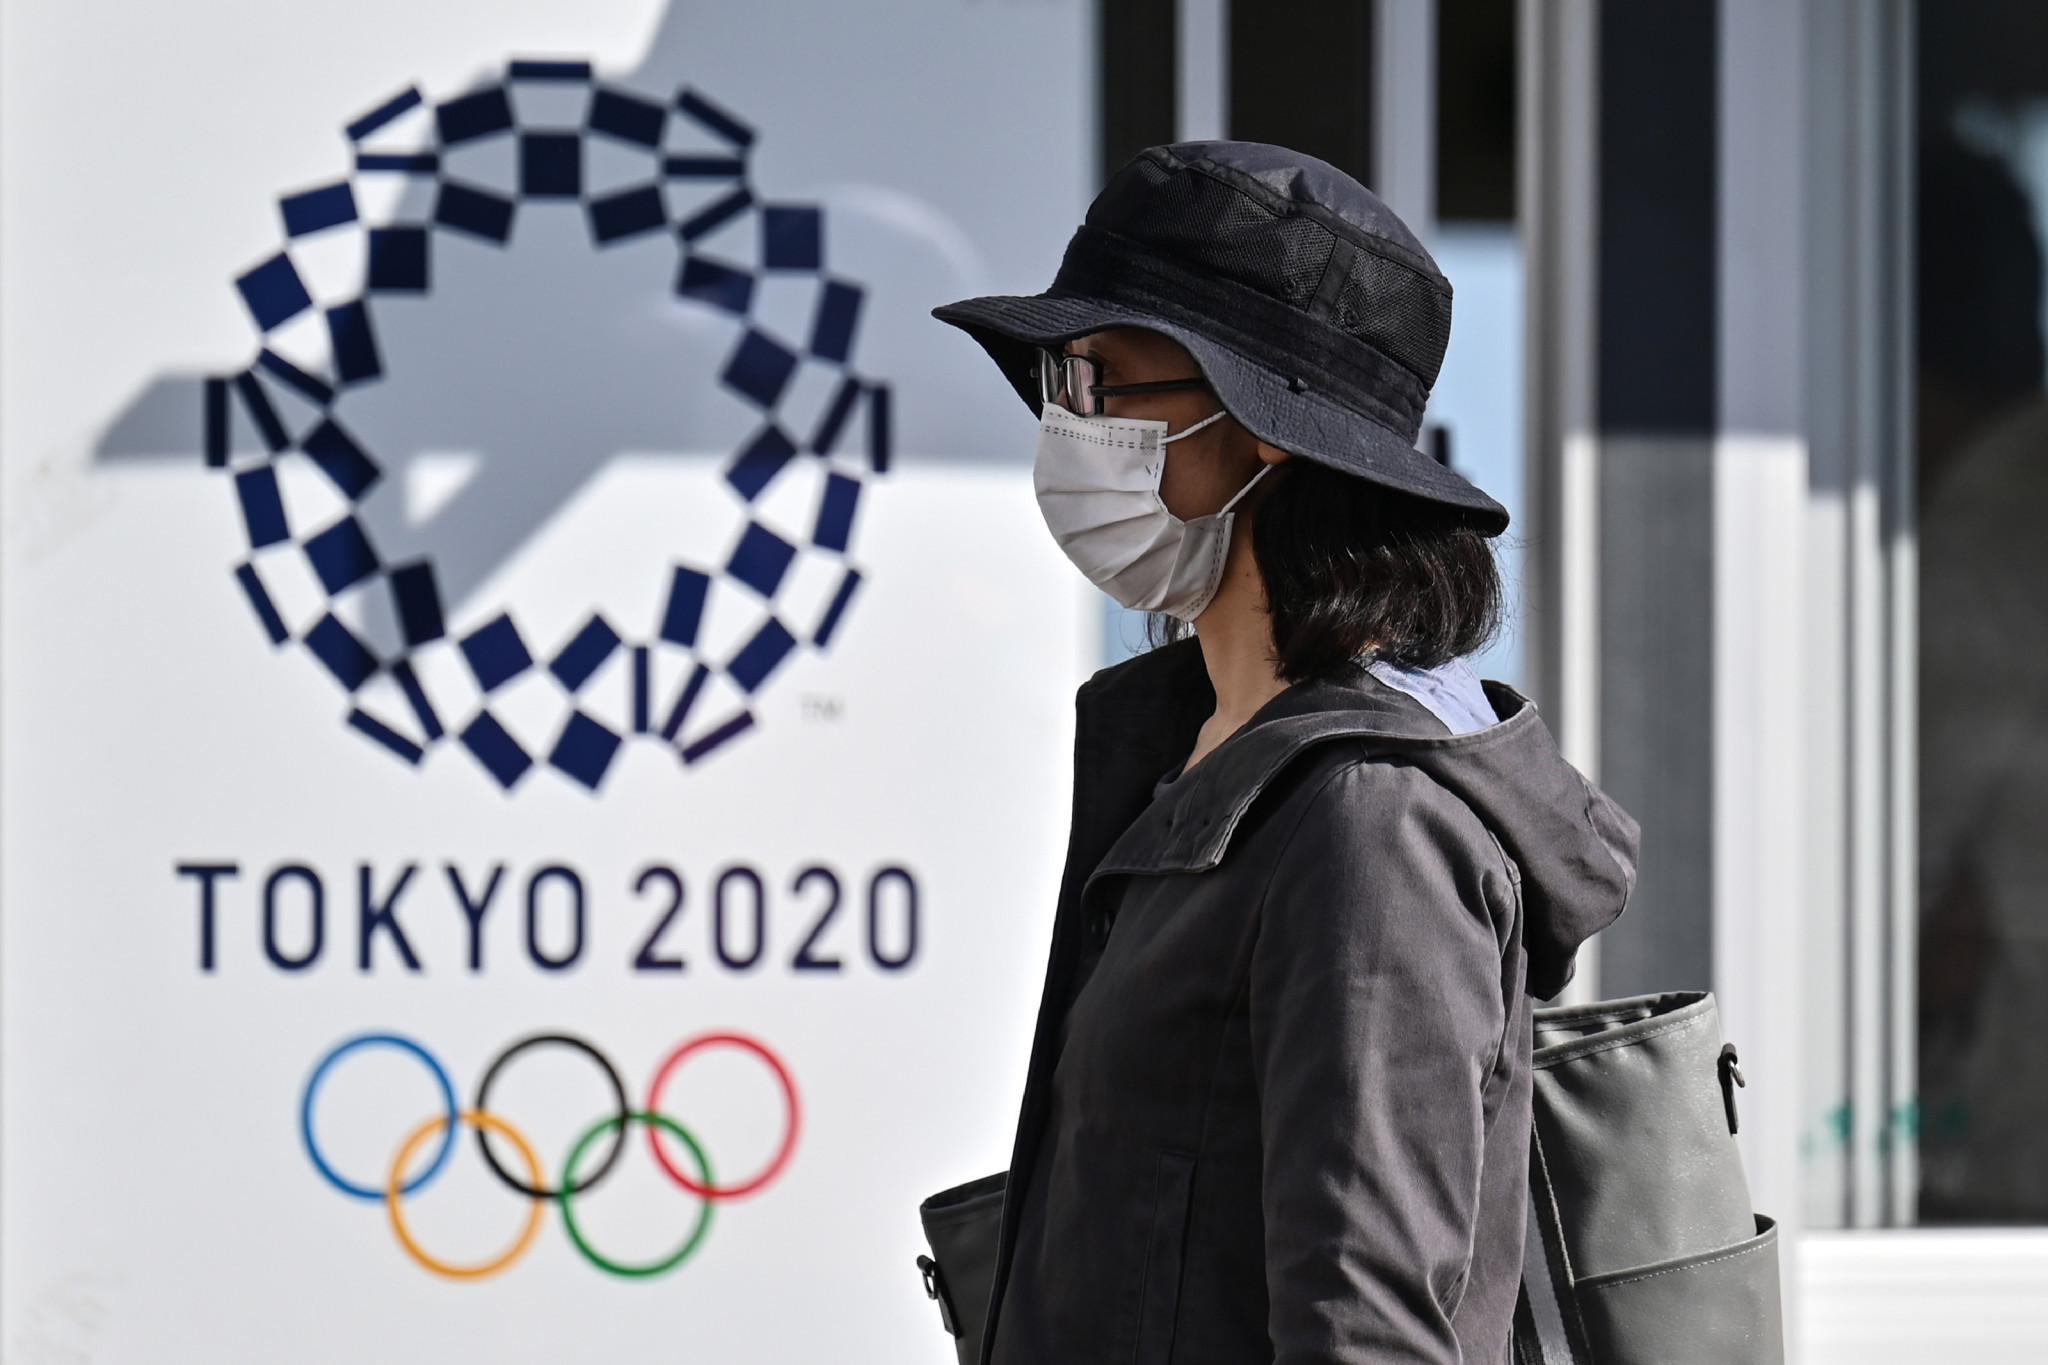 There have been fresh concerns about the staging of the Olympic and Paralympic Games this year after the discovery of a new COVID-19 variant ©Getty Images